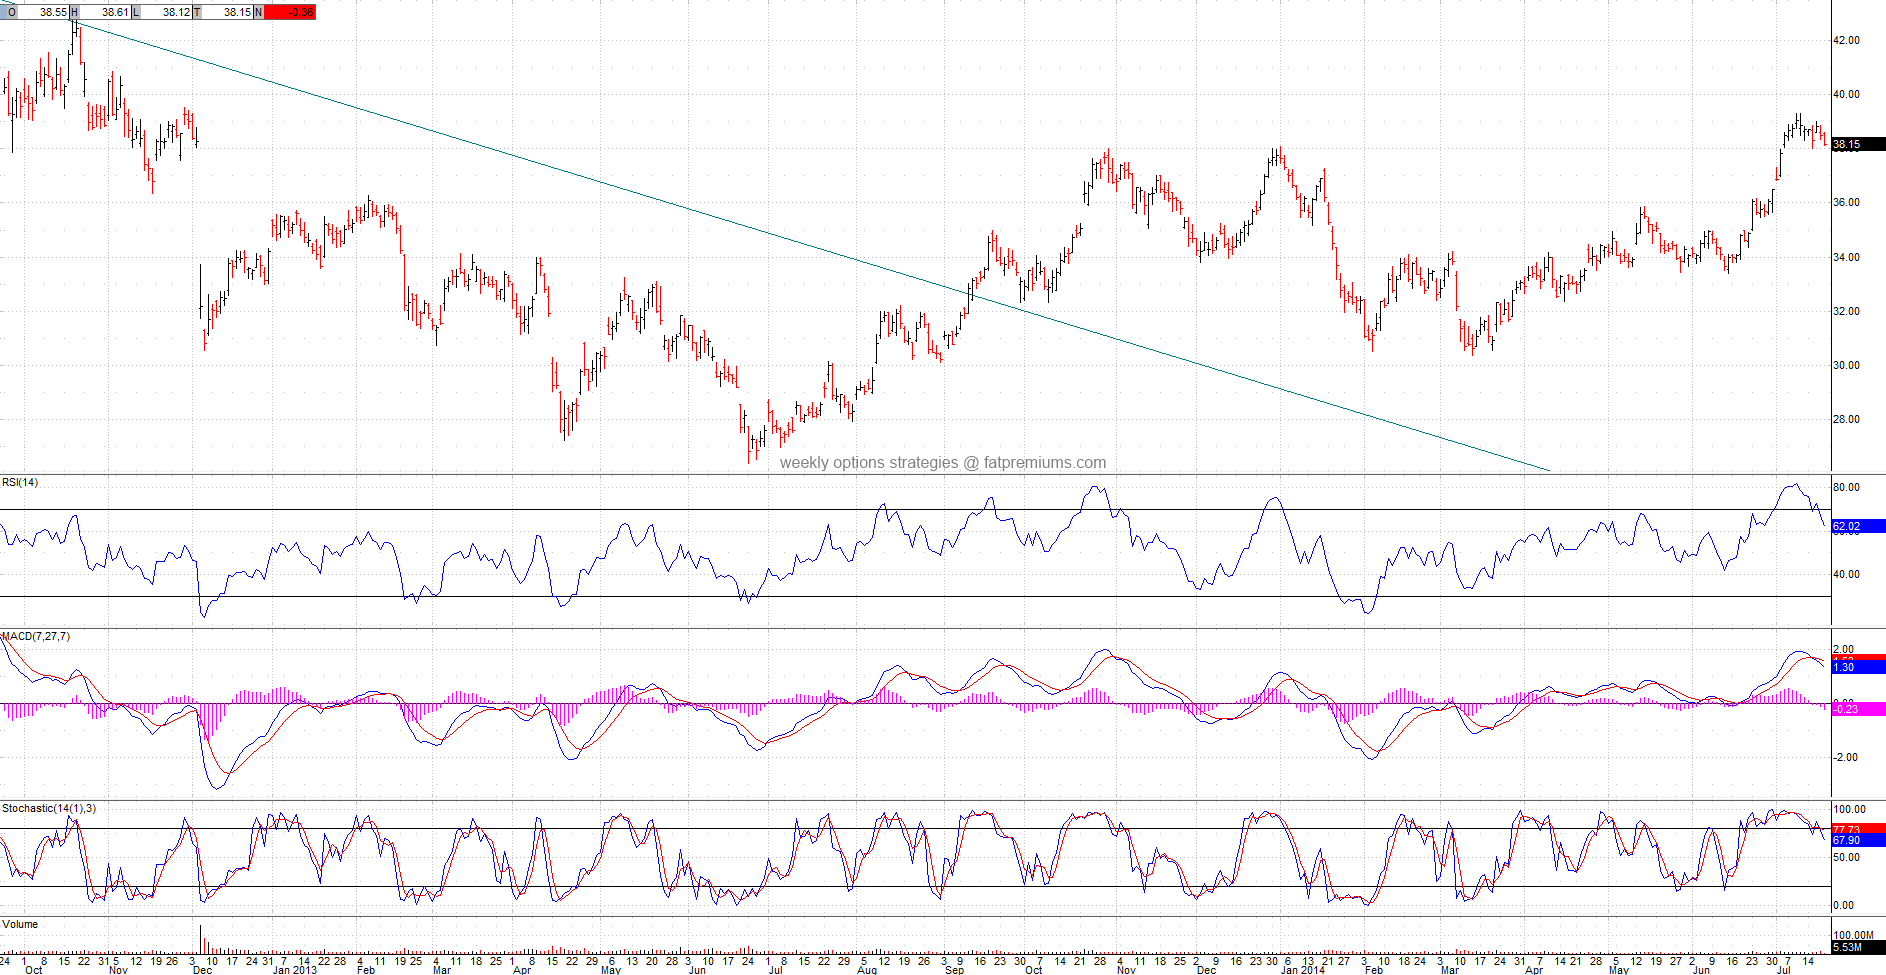 Freeport-Mcmoran Copper & Gold (NYSE:FCX) Daily Chart (2014-07-18) Bearish